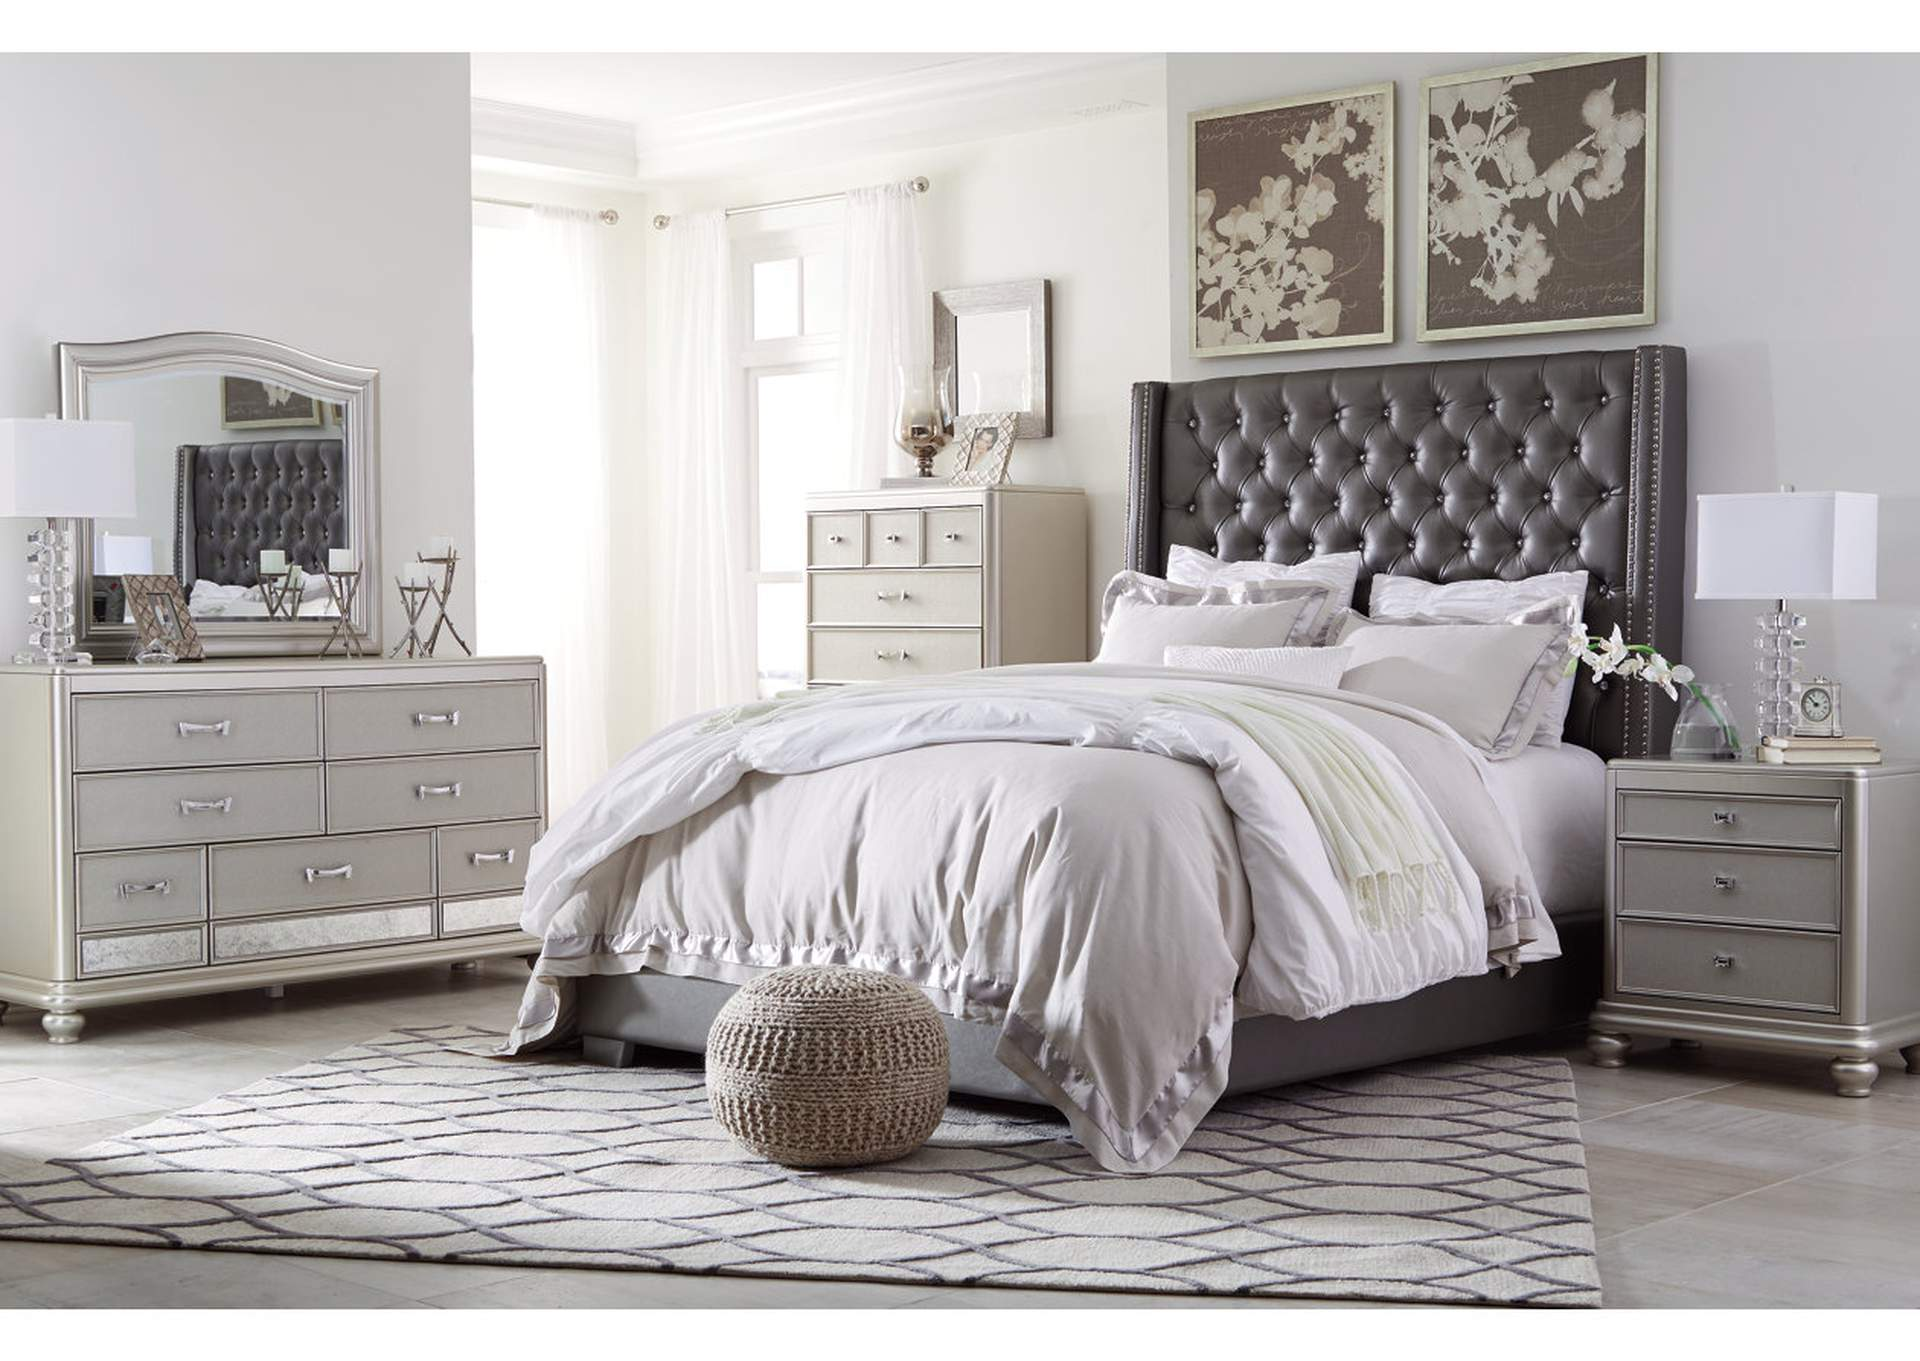 Coralayne Gray King Upholstered Bed w/Dresser and Mirror,Signature Design By Ashley